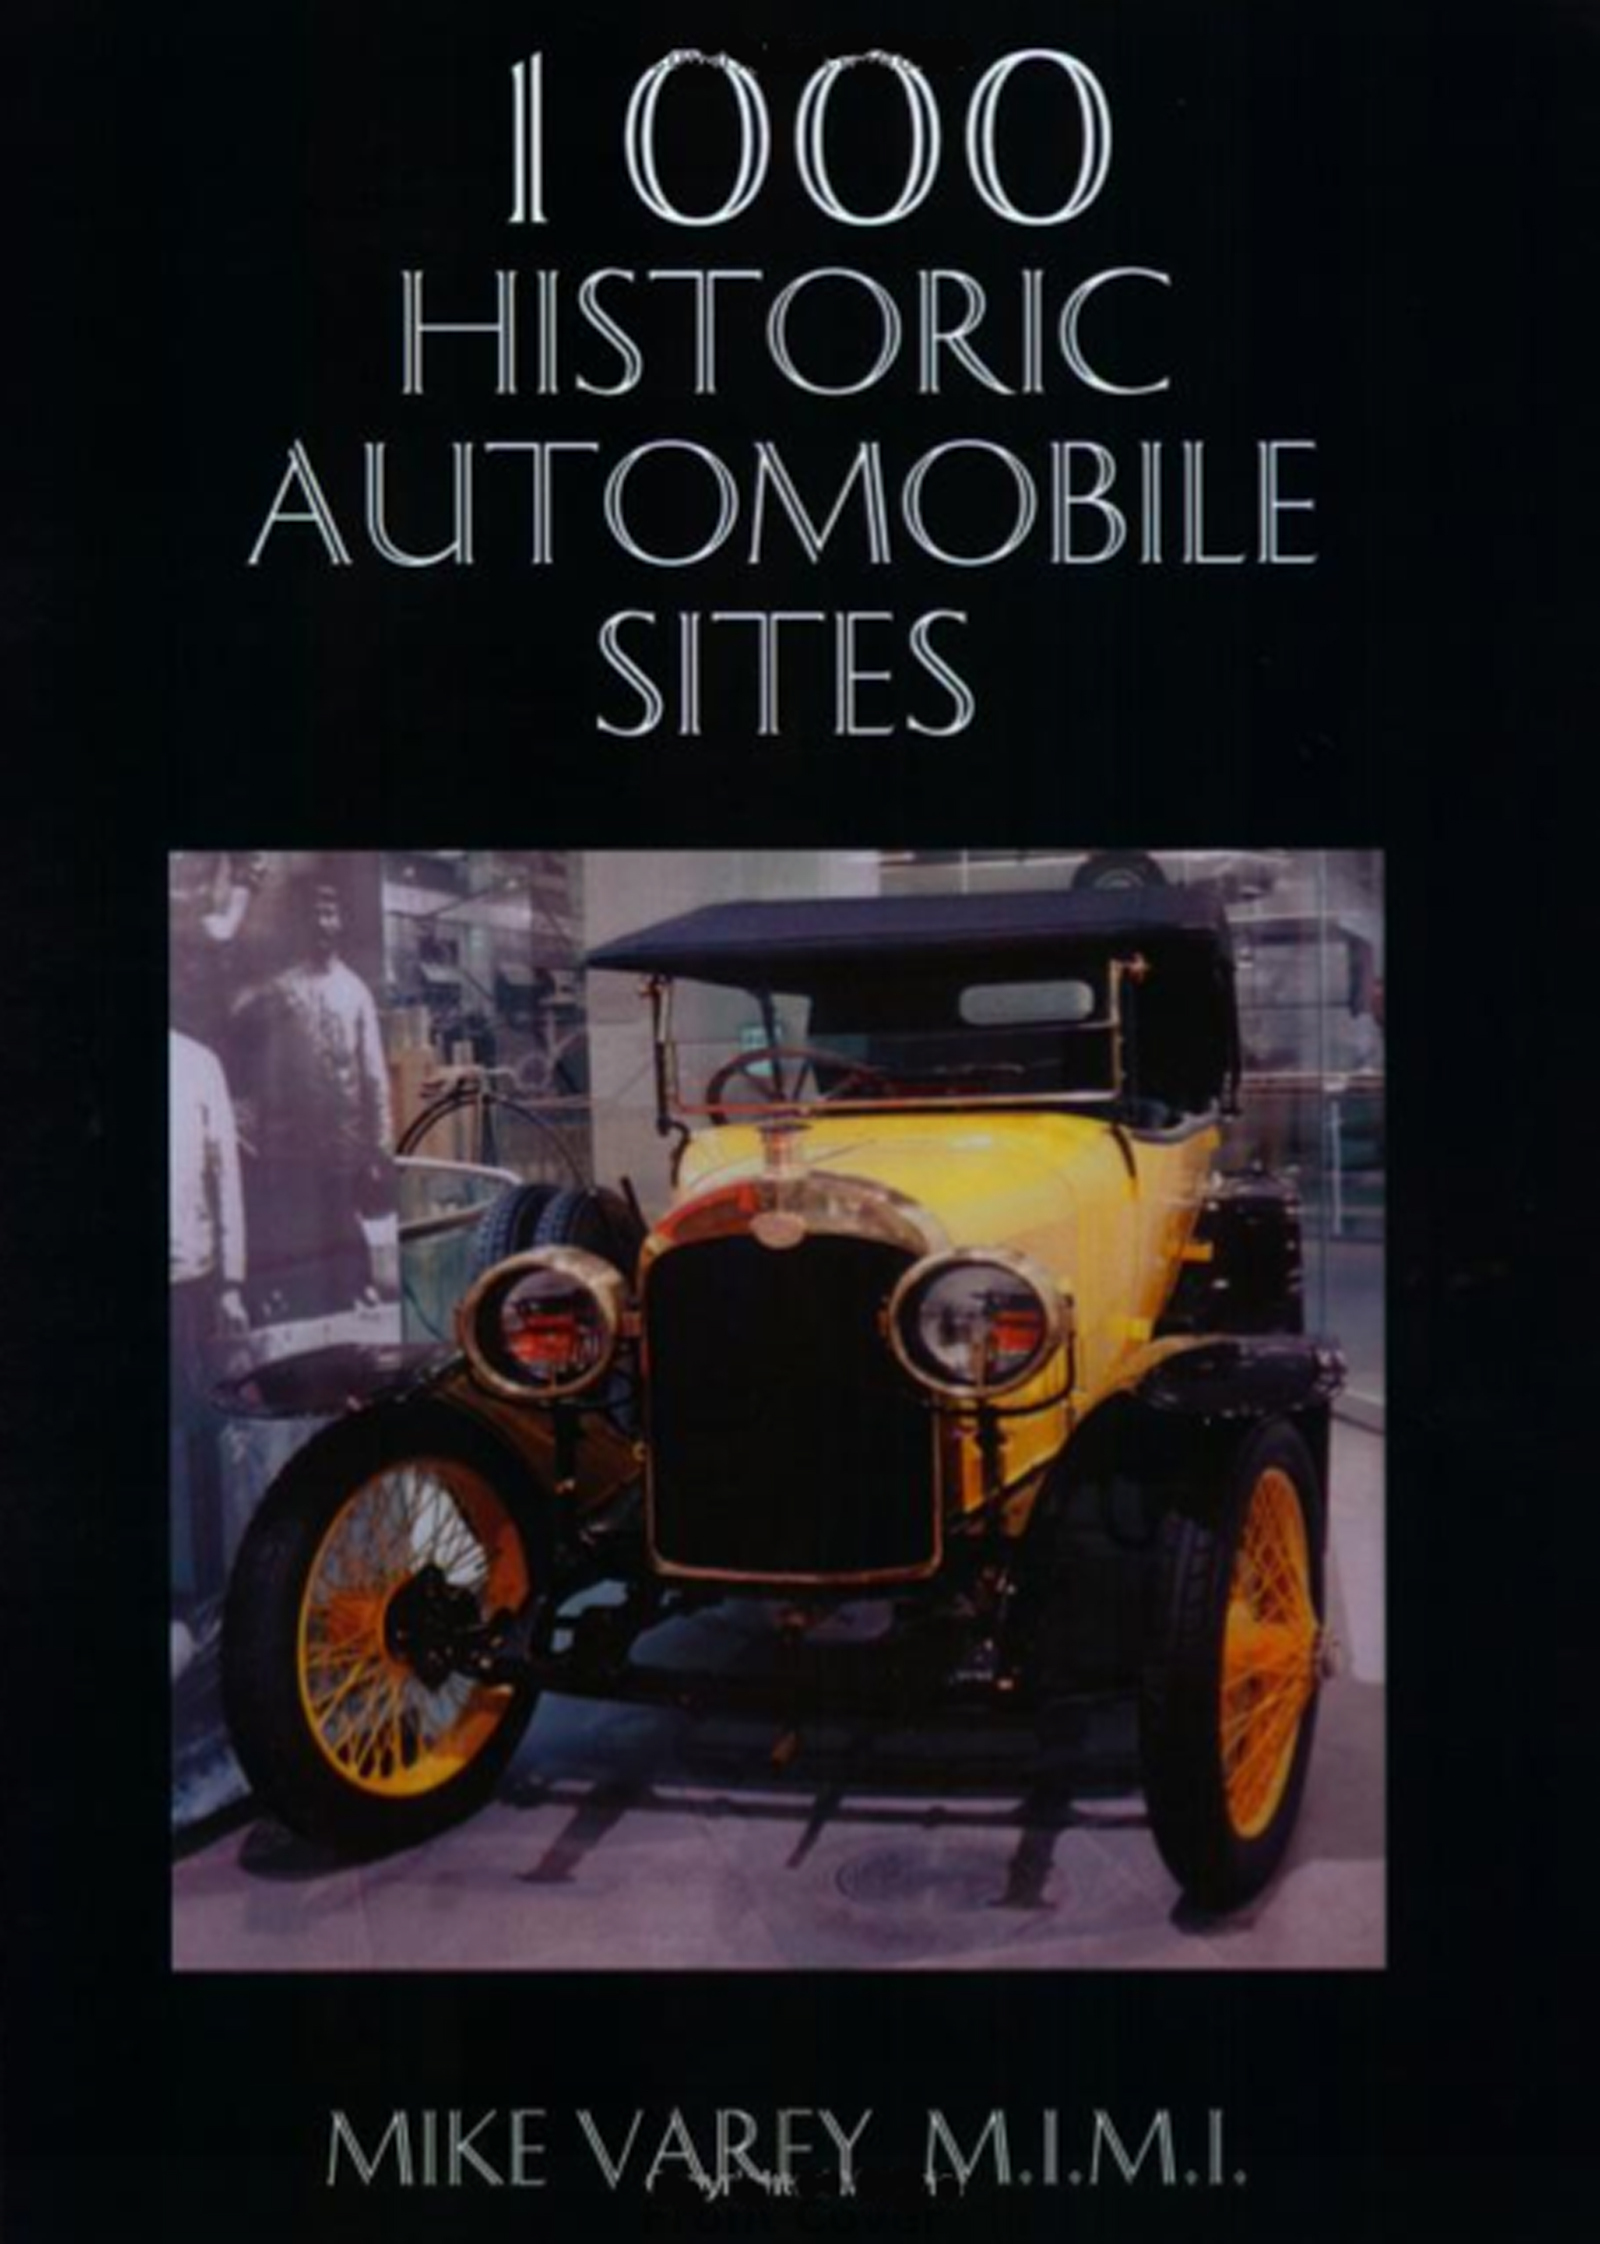 1000 Historic Automobile Sites